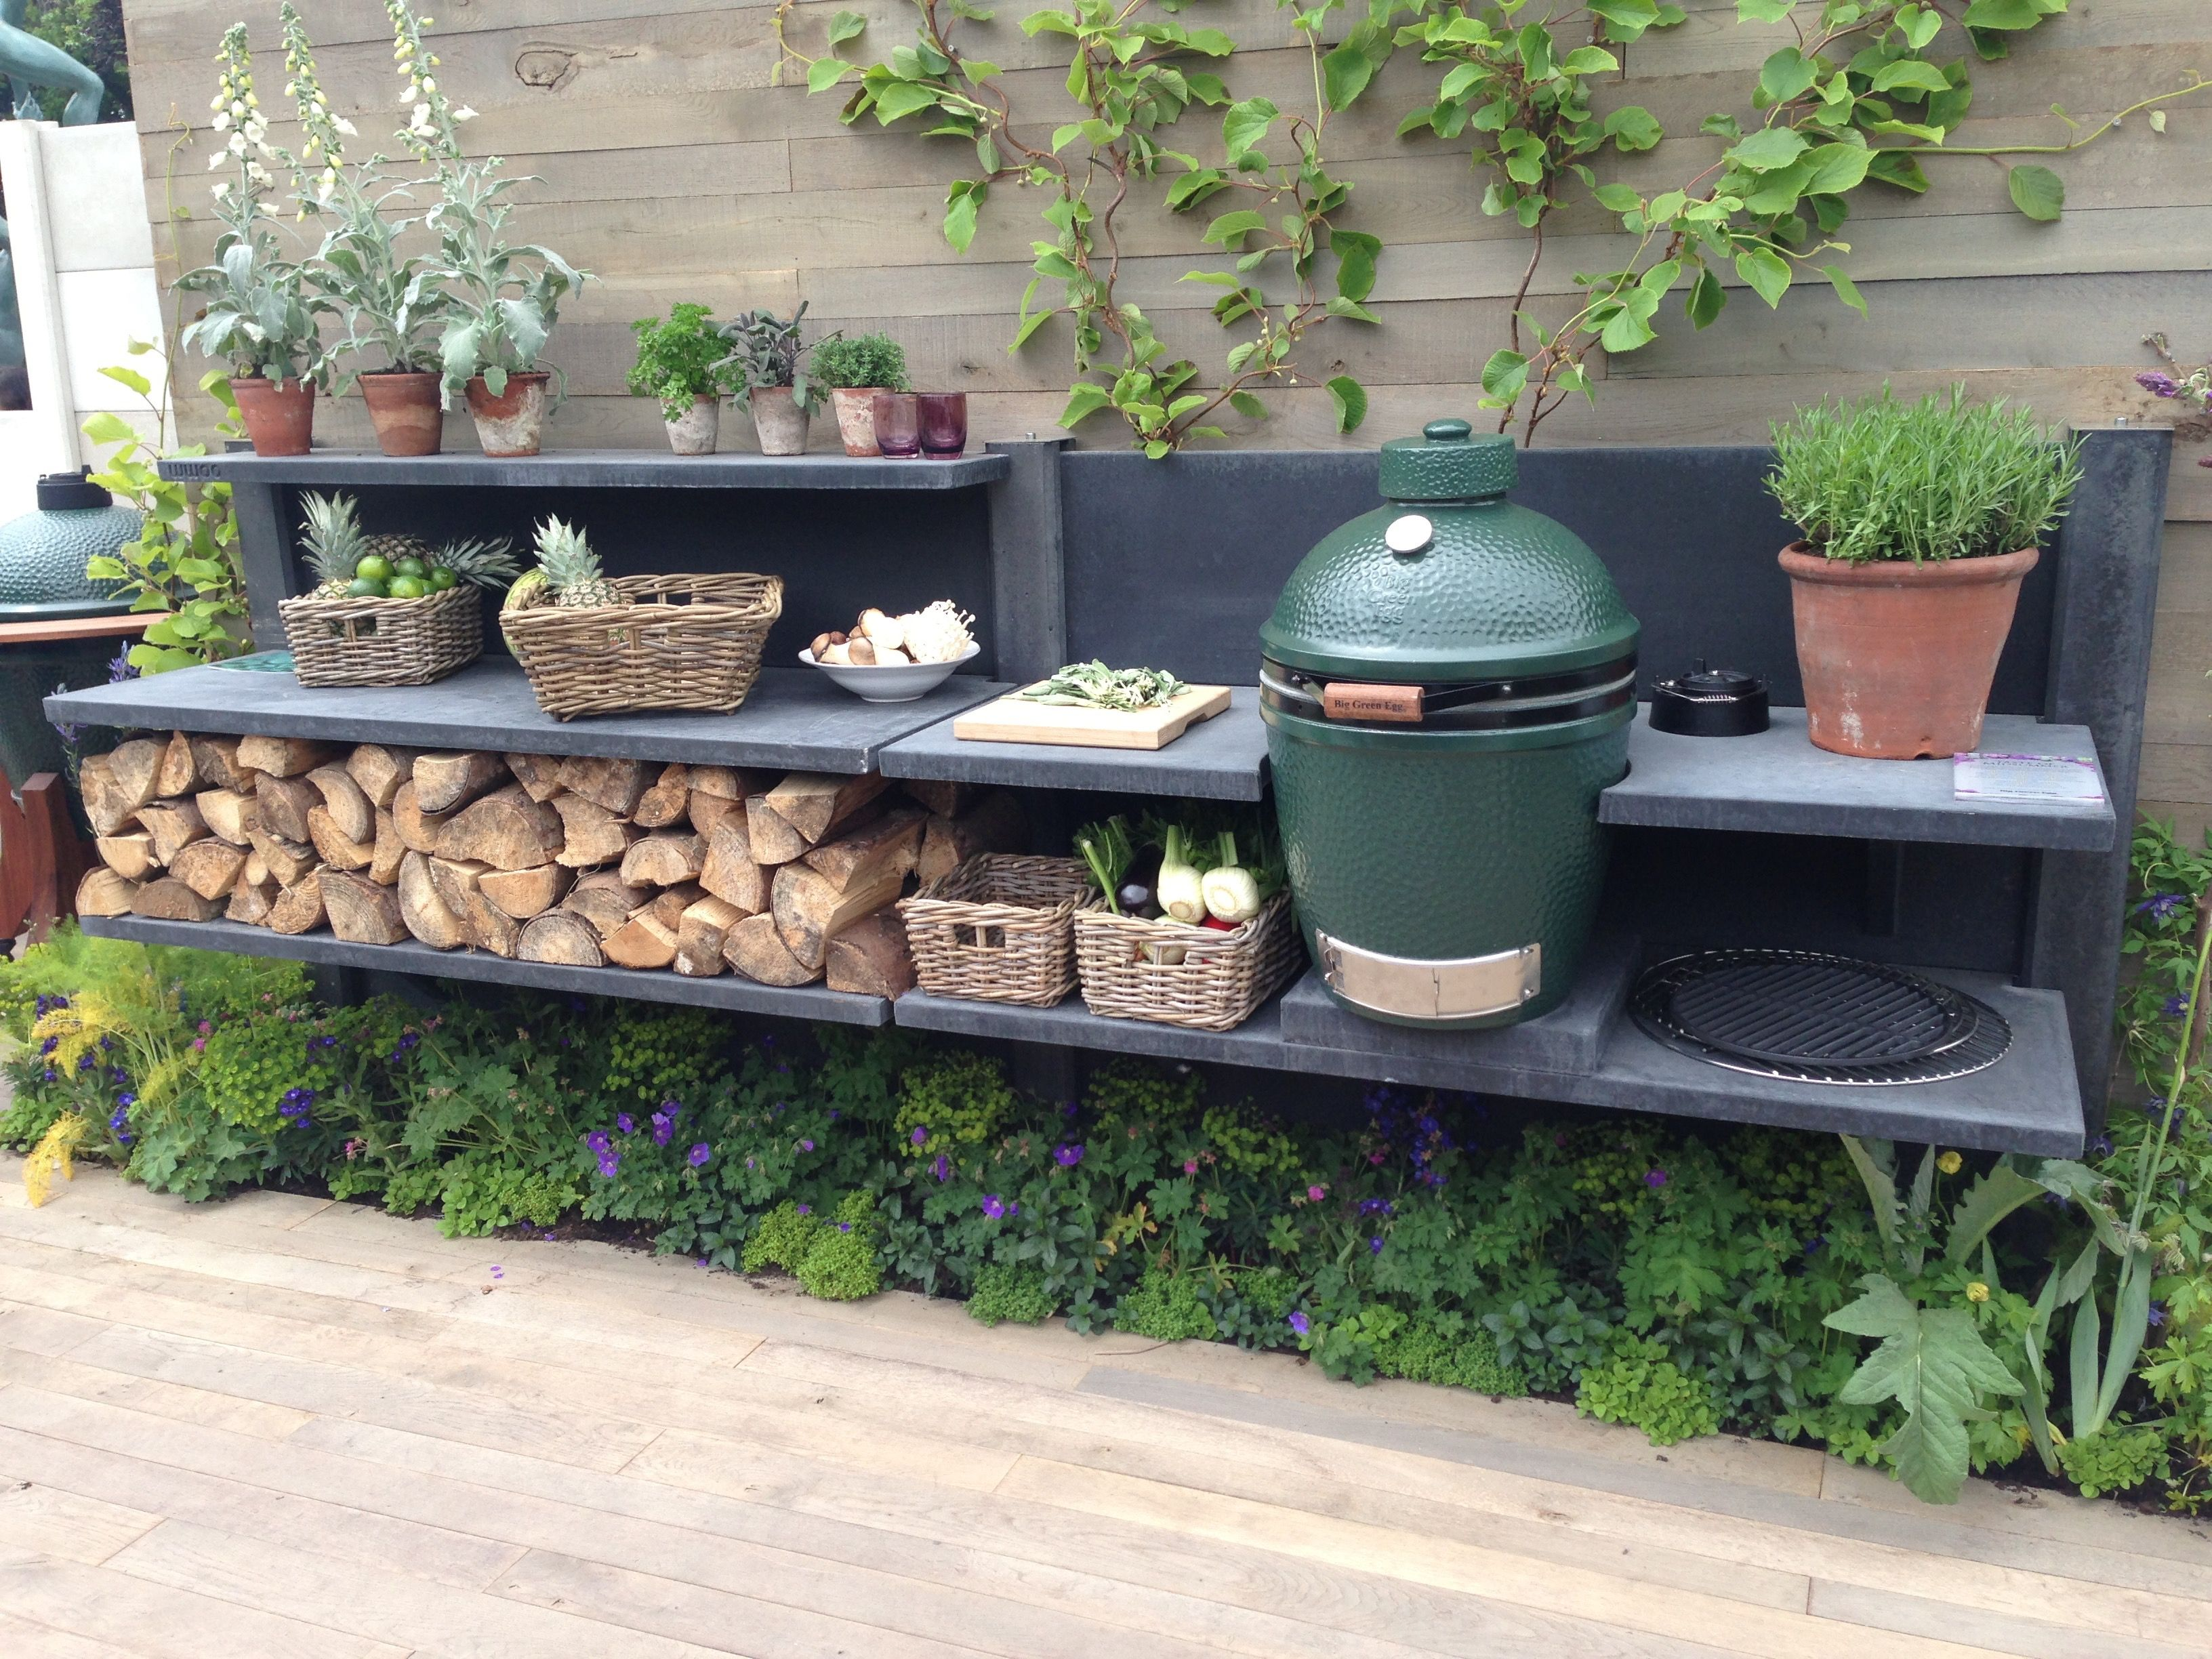 Outdoor Küche Green Egg Anthracite Wwoo Kitchen In The Big Green Egg Stand At The